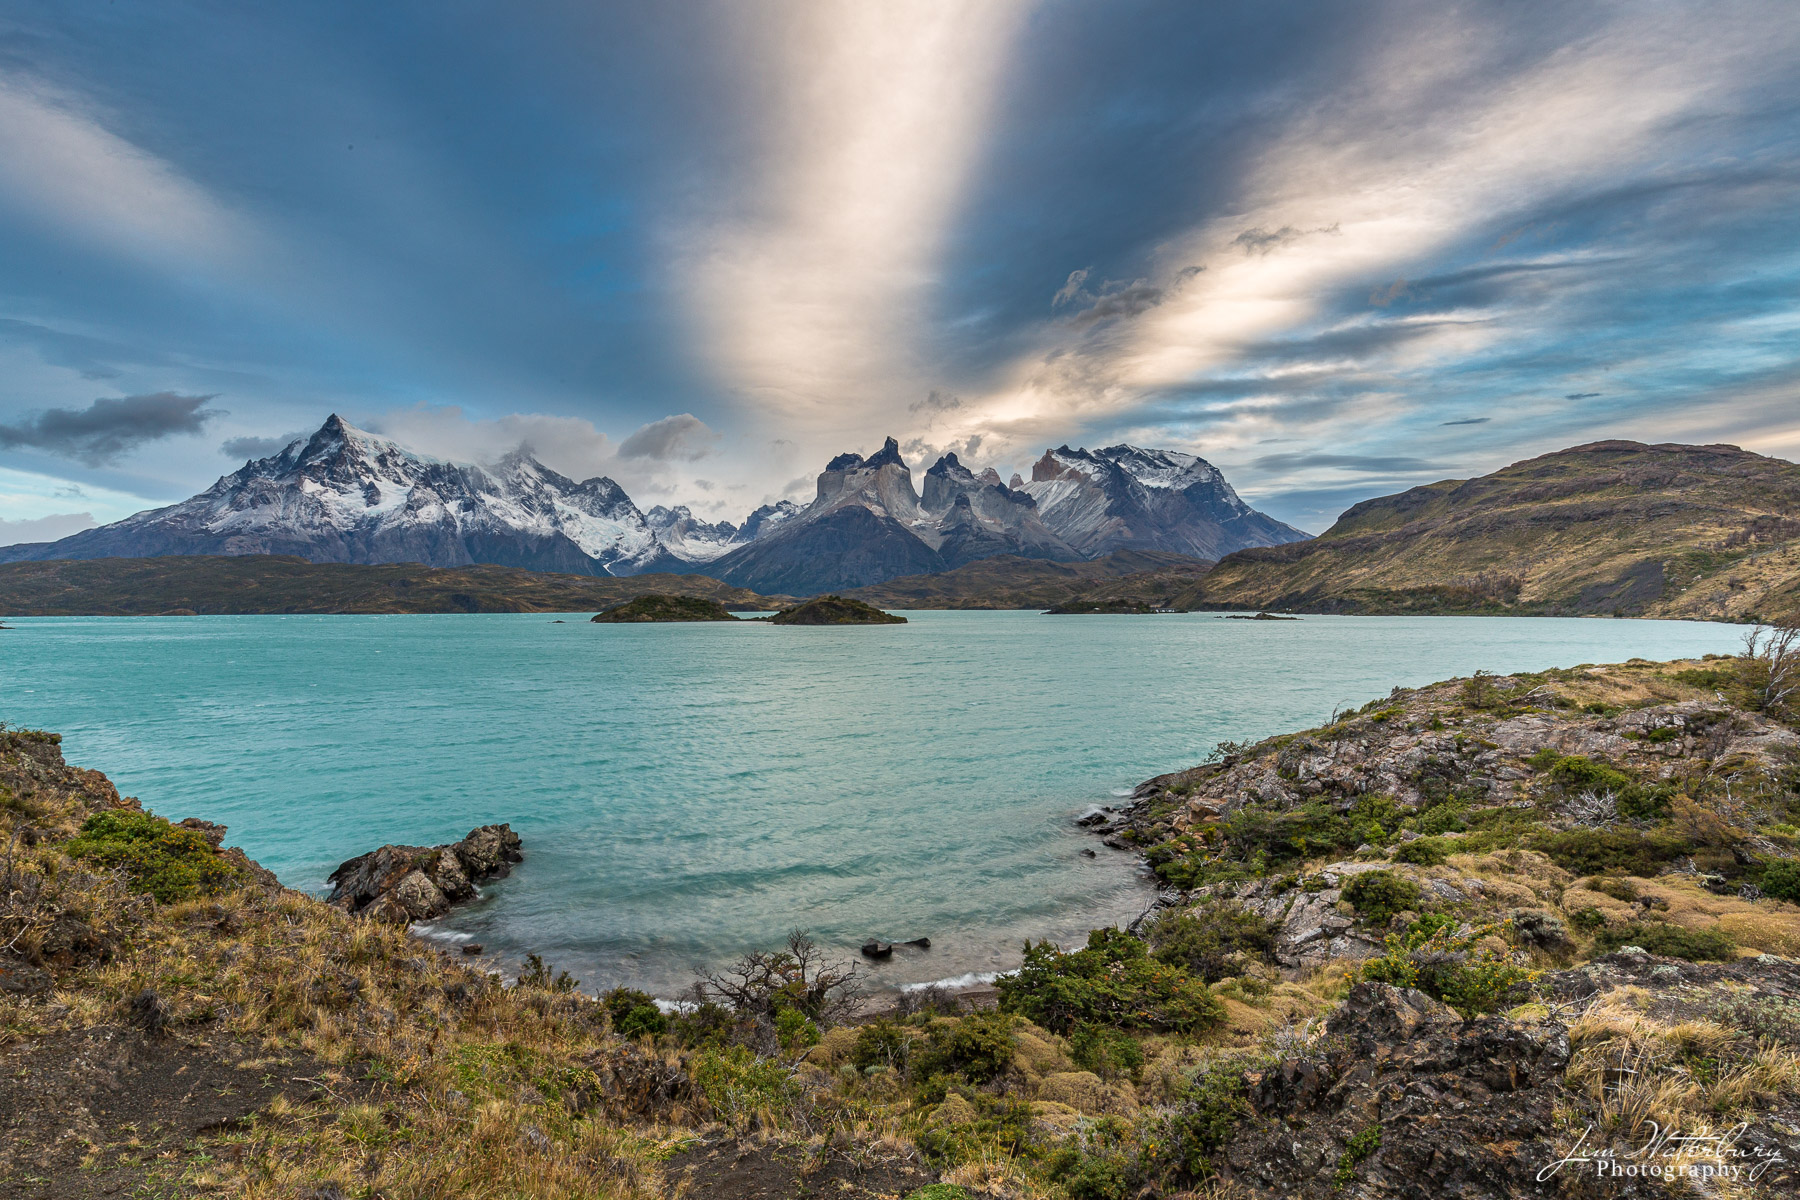 The turquoise waters of Pehoe Lake, in front of the Paine Massif, in Torres del Paine National Park, Patagonia.